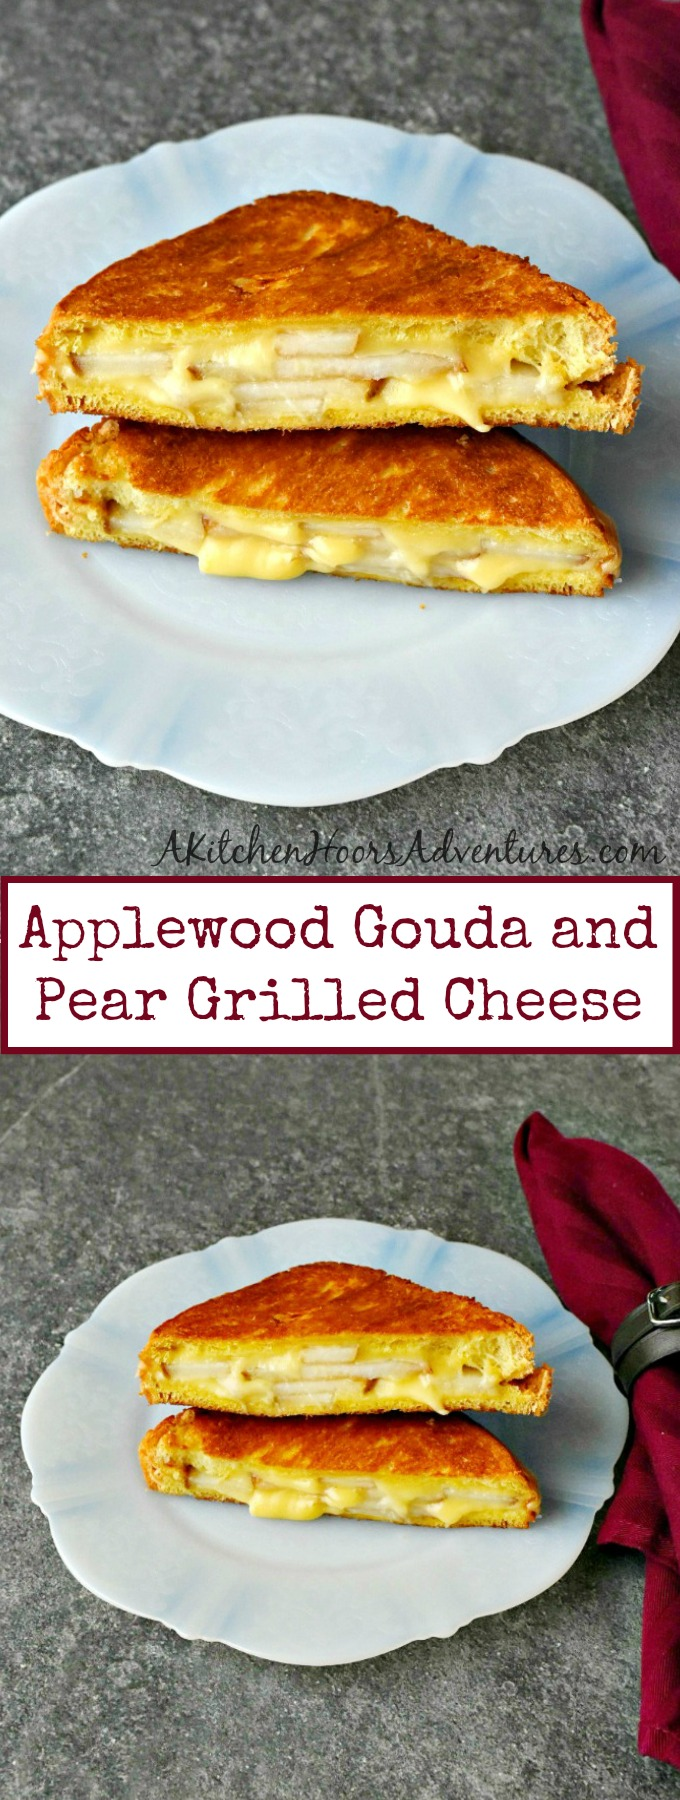 Smokey applewood gouda and crispy, sweet pears make the most amazing combination.  Applewood Gouda and Pear Grilled Cheese is a delicious grilled cheese that everyone will love!! #SundaySupper